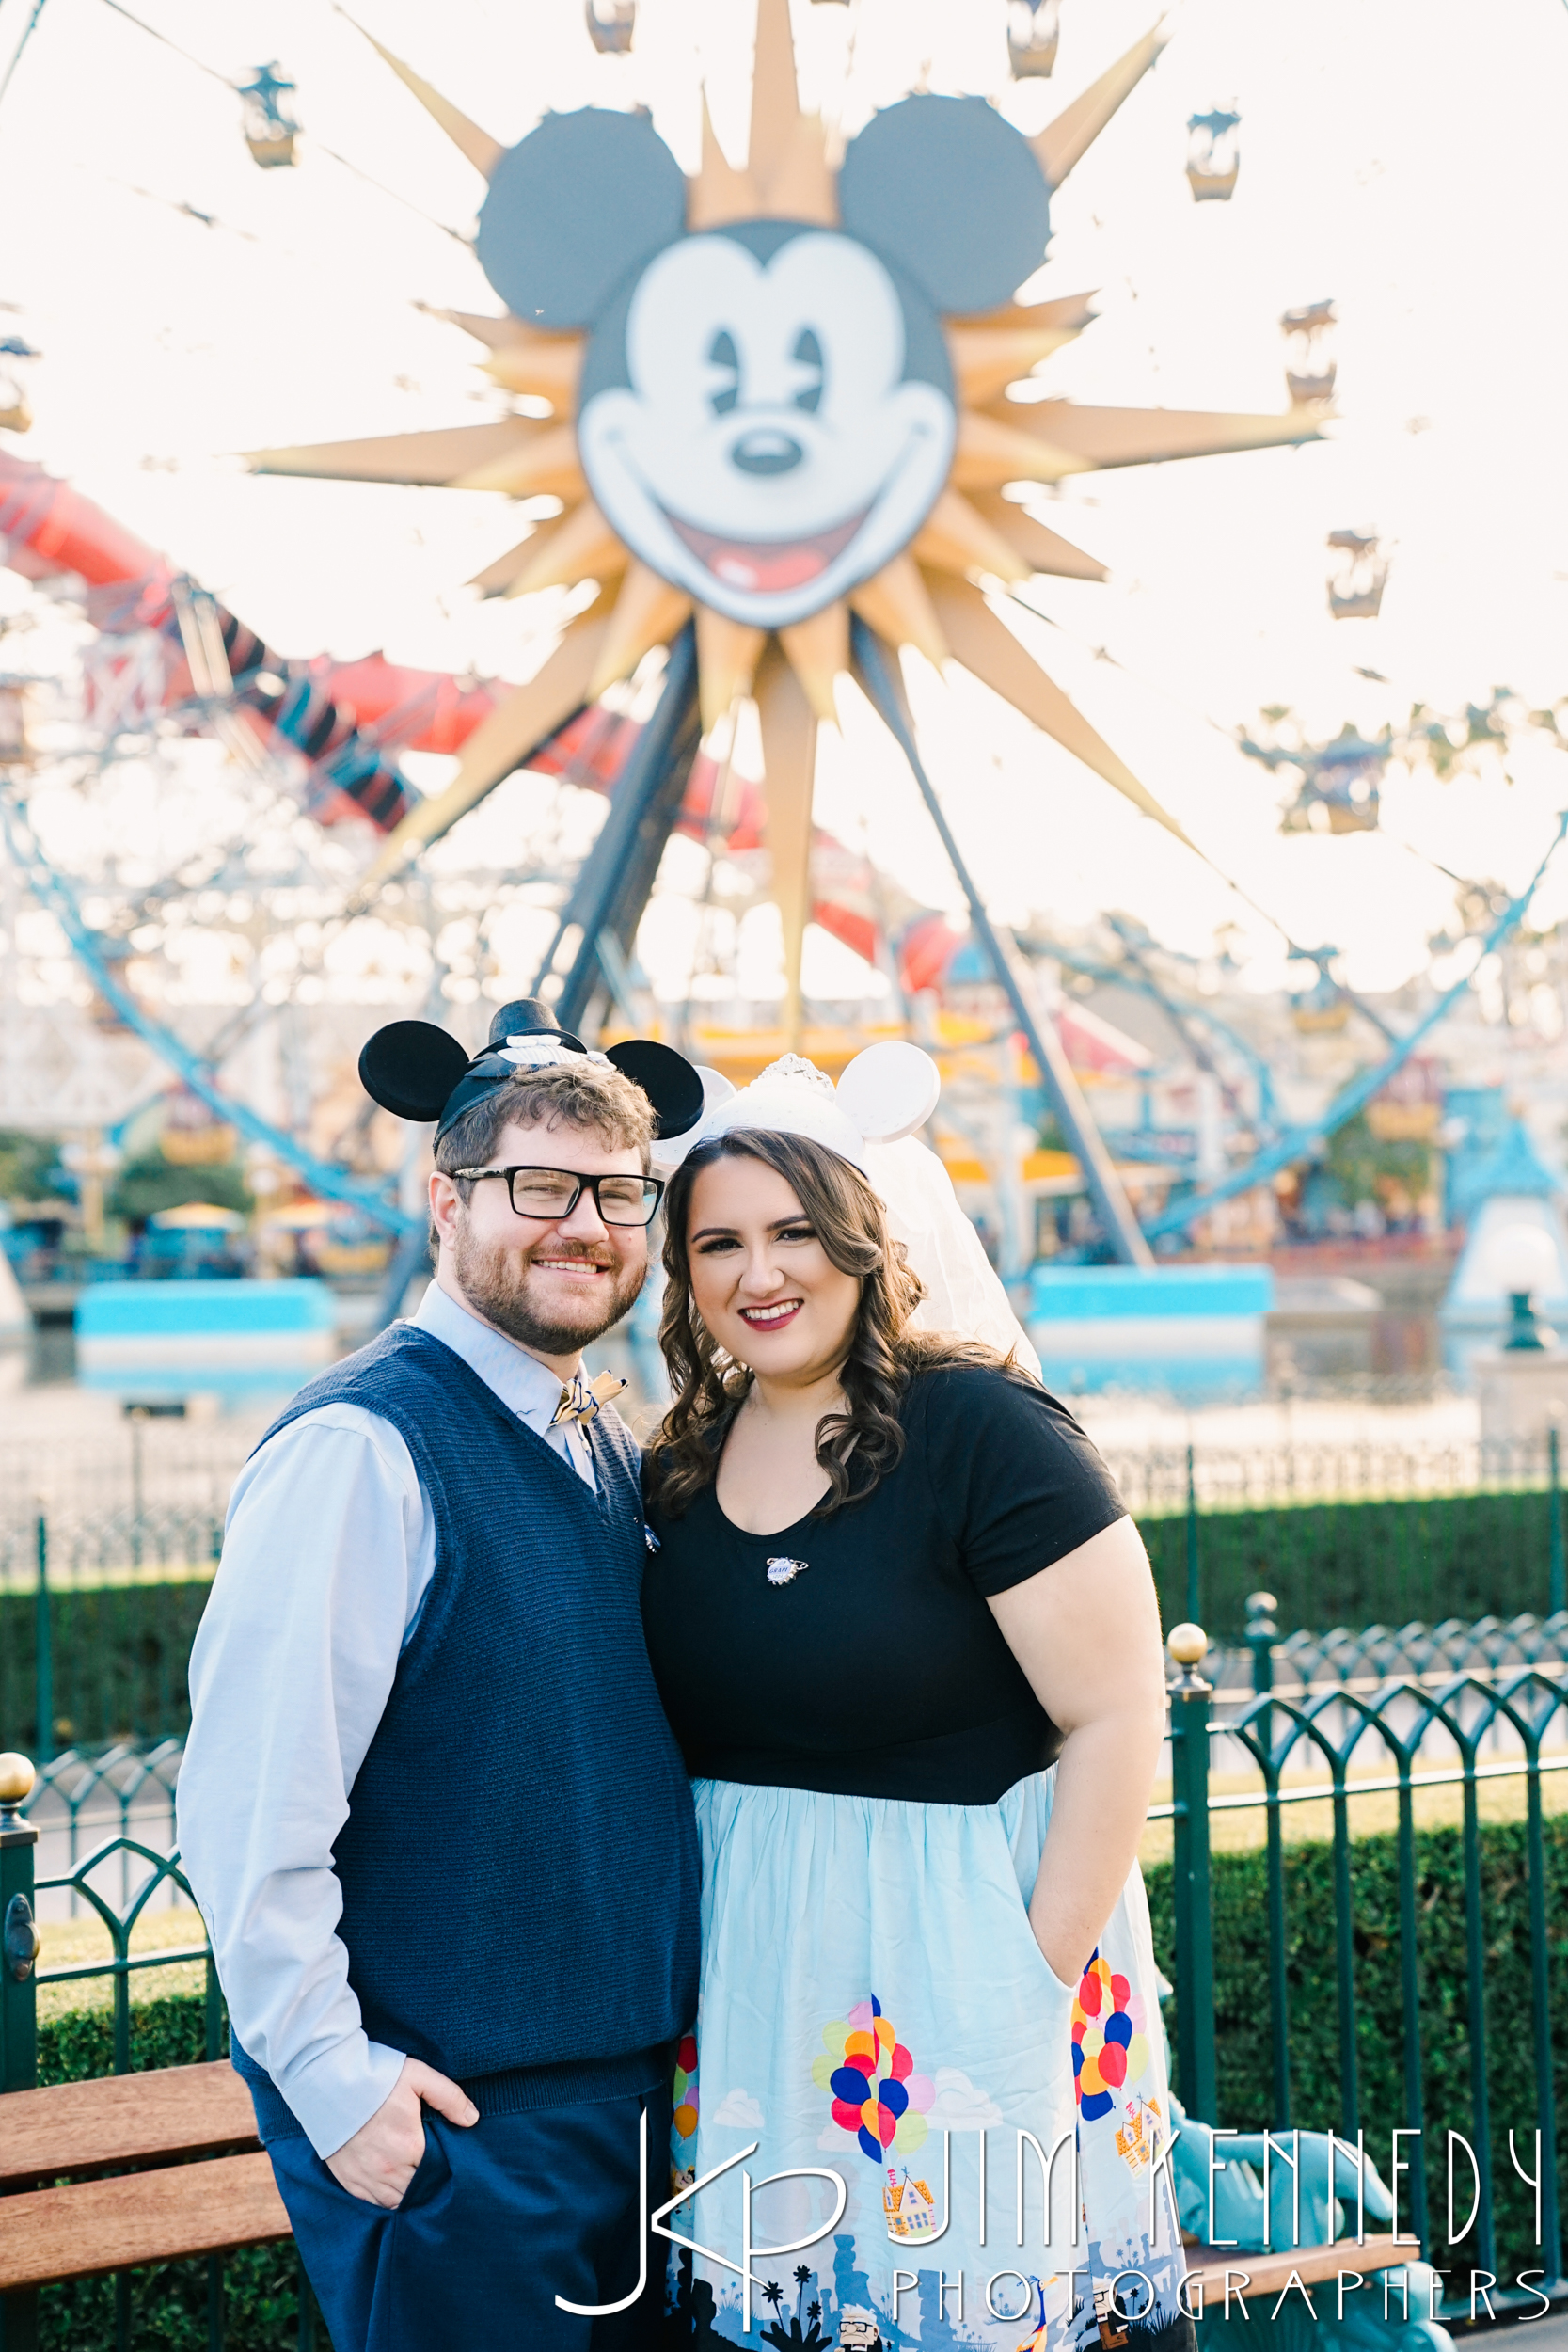 Disneyland-Engagement-0046.JPG